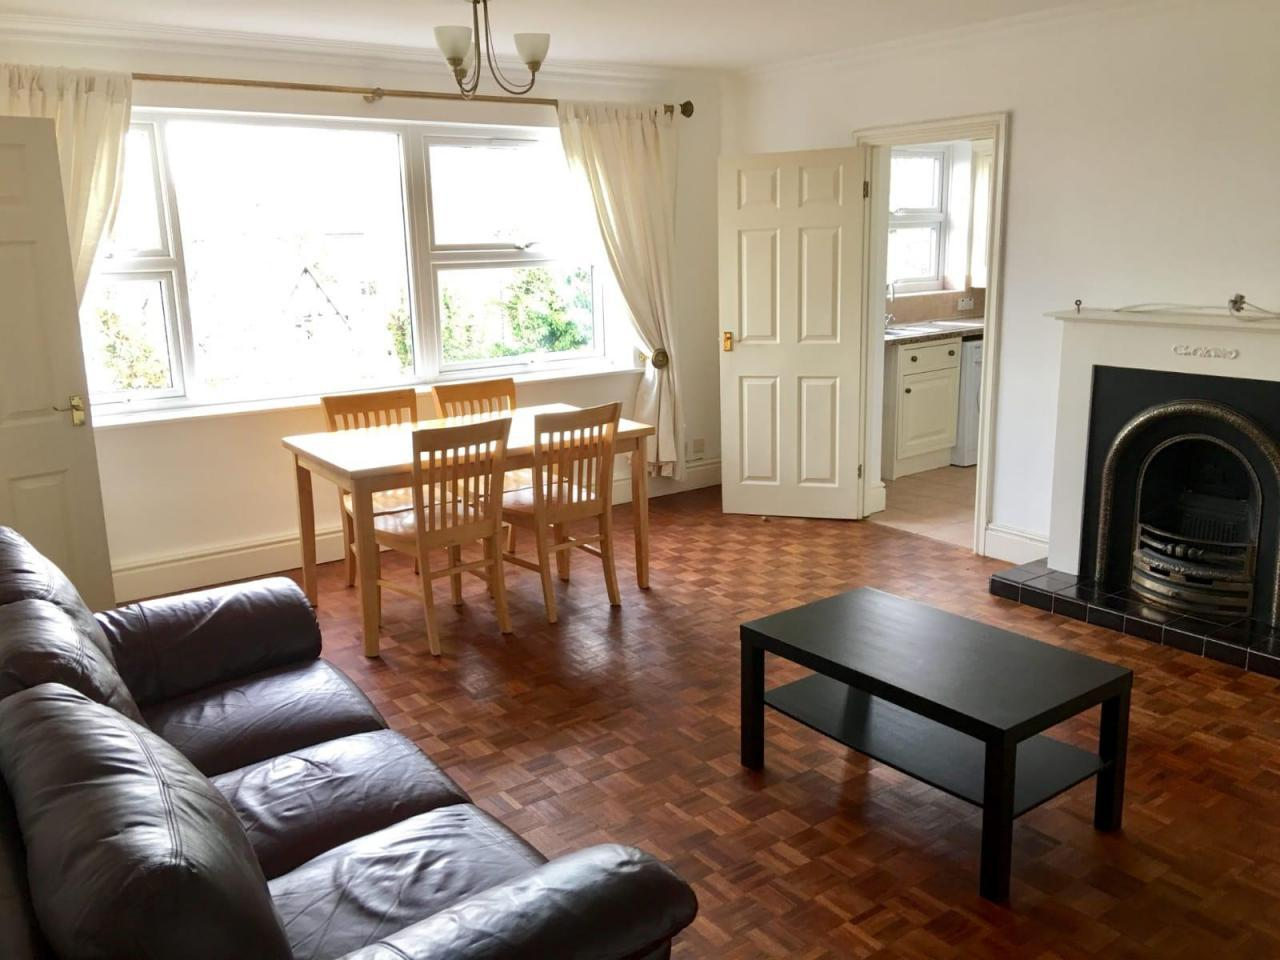 1 Bedroom Ealing W13 - 4